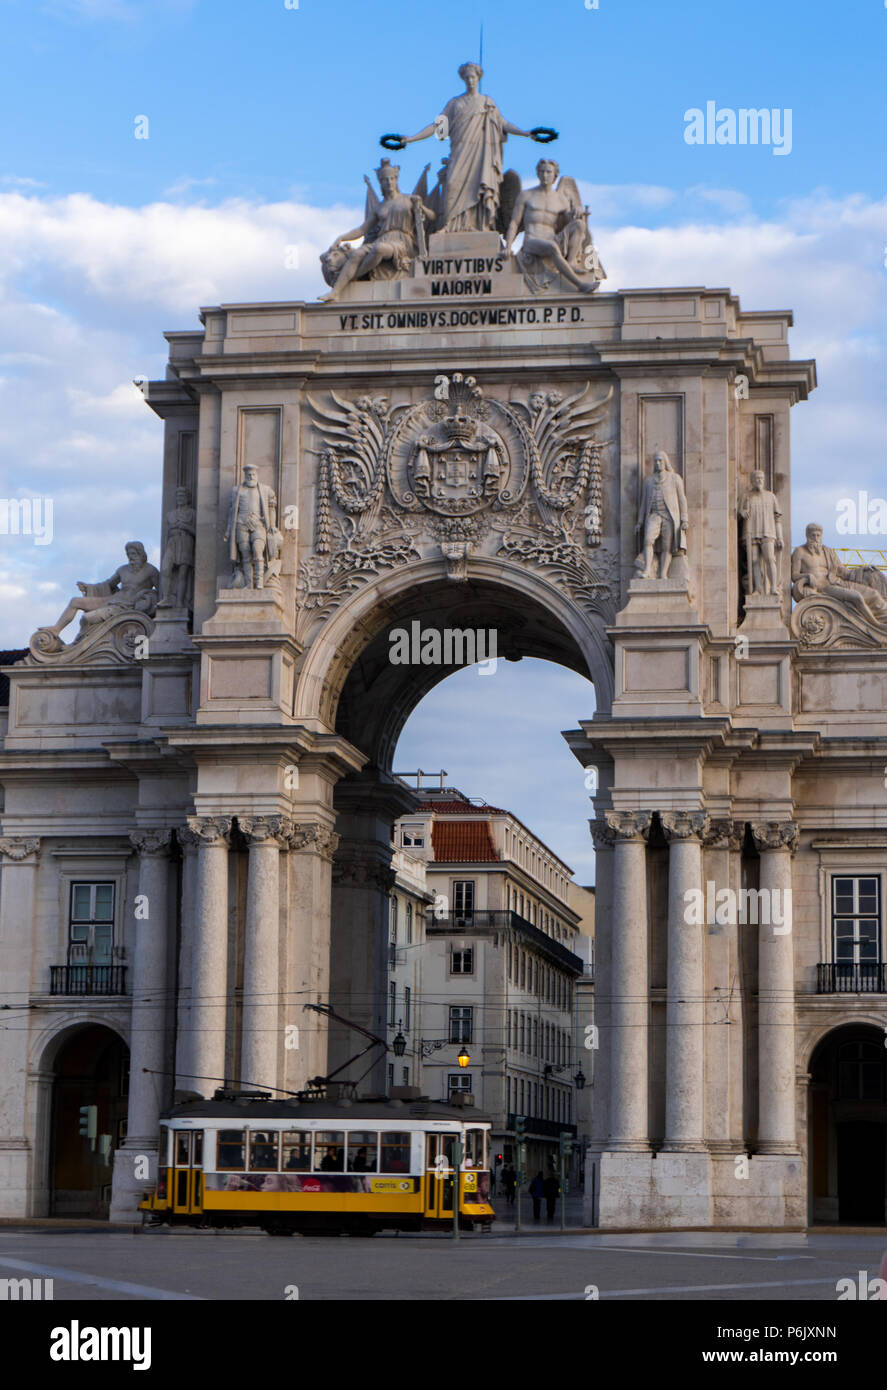 Rua Augusta Arch in Lisbon with iconic yellow trolley passing out front. - Stock Image